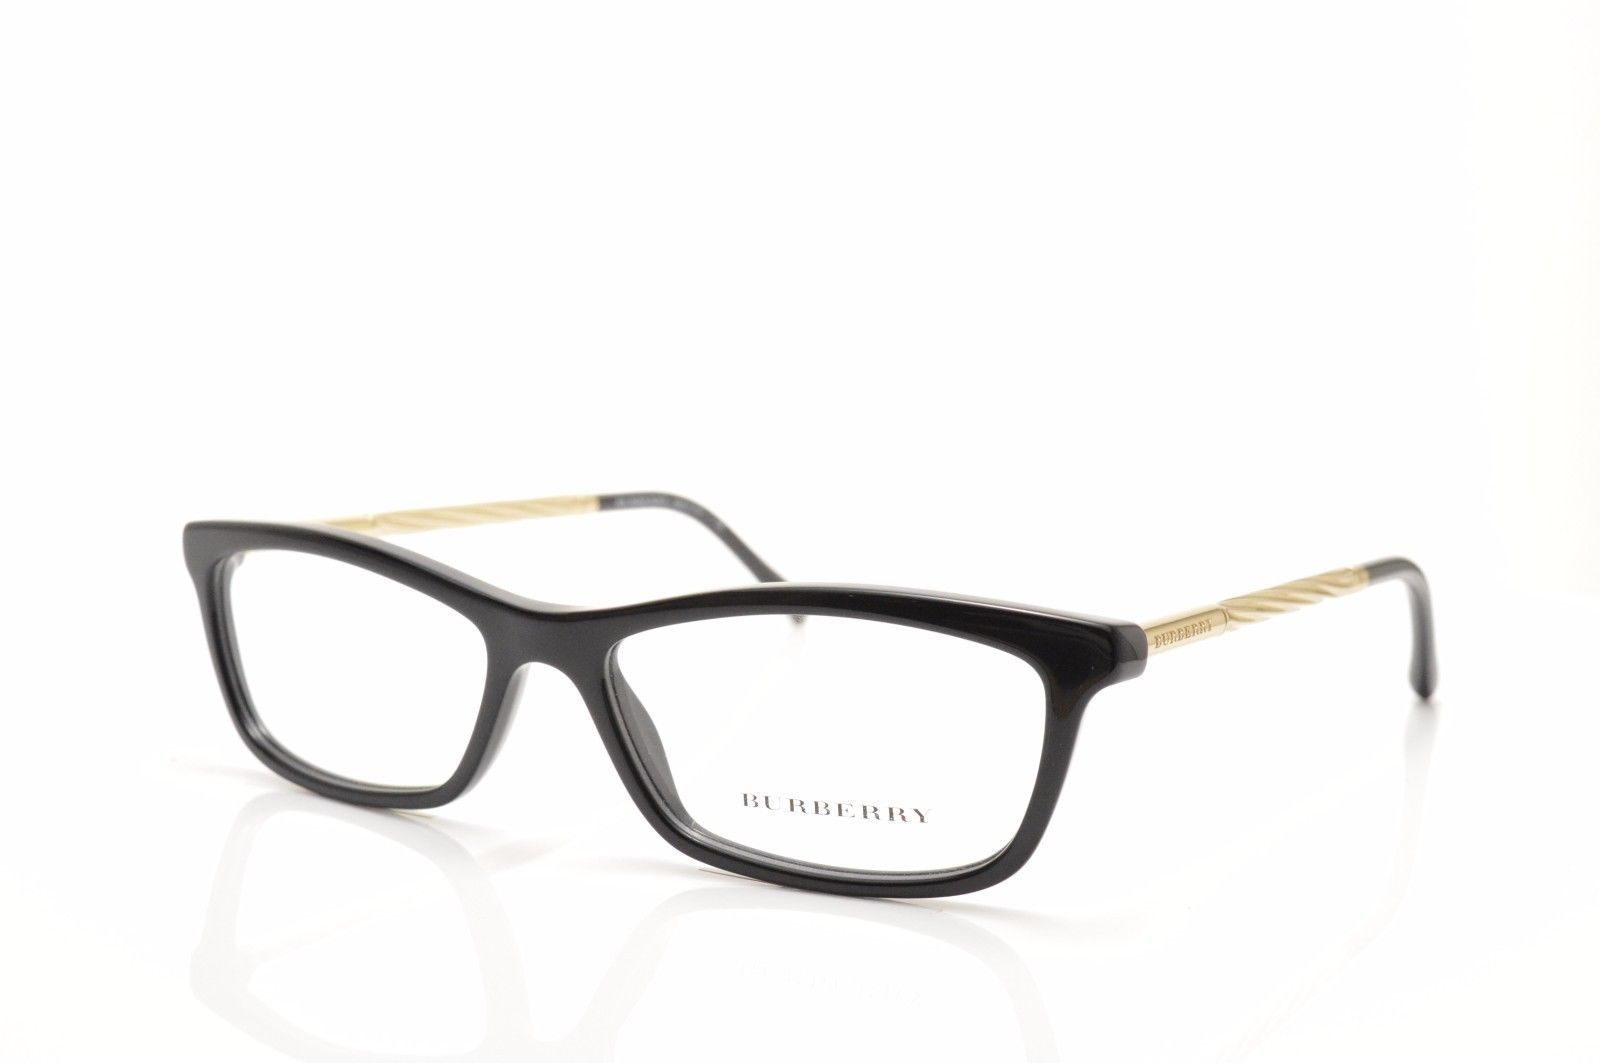 760220a0d31 S l1600. S l1600. Previous. BrandNew B2190 3001 New Authentic BURBERRY Rx EYEGLASSES  FRAME 52-15-140 Italy